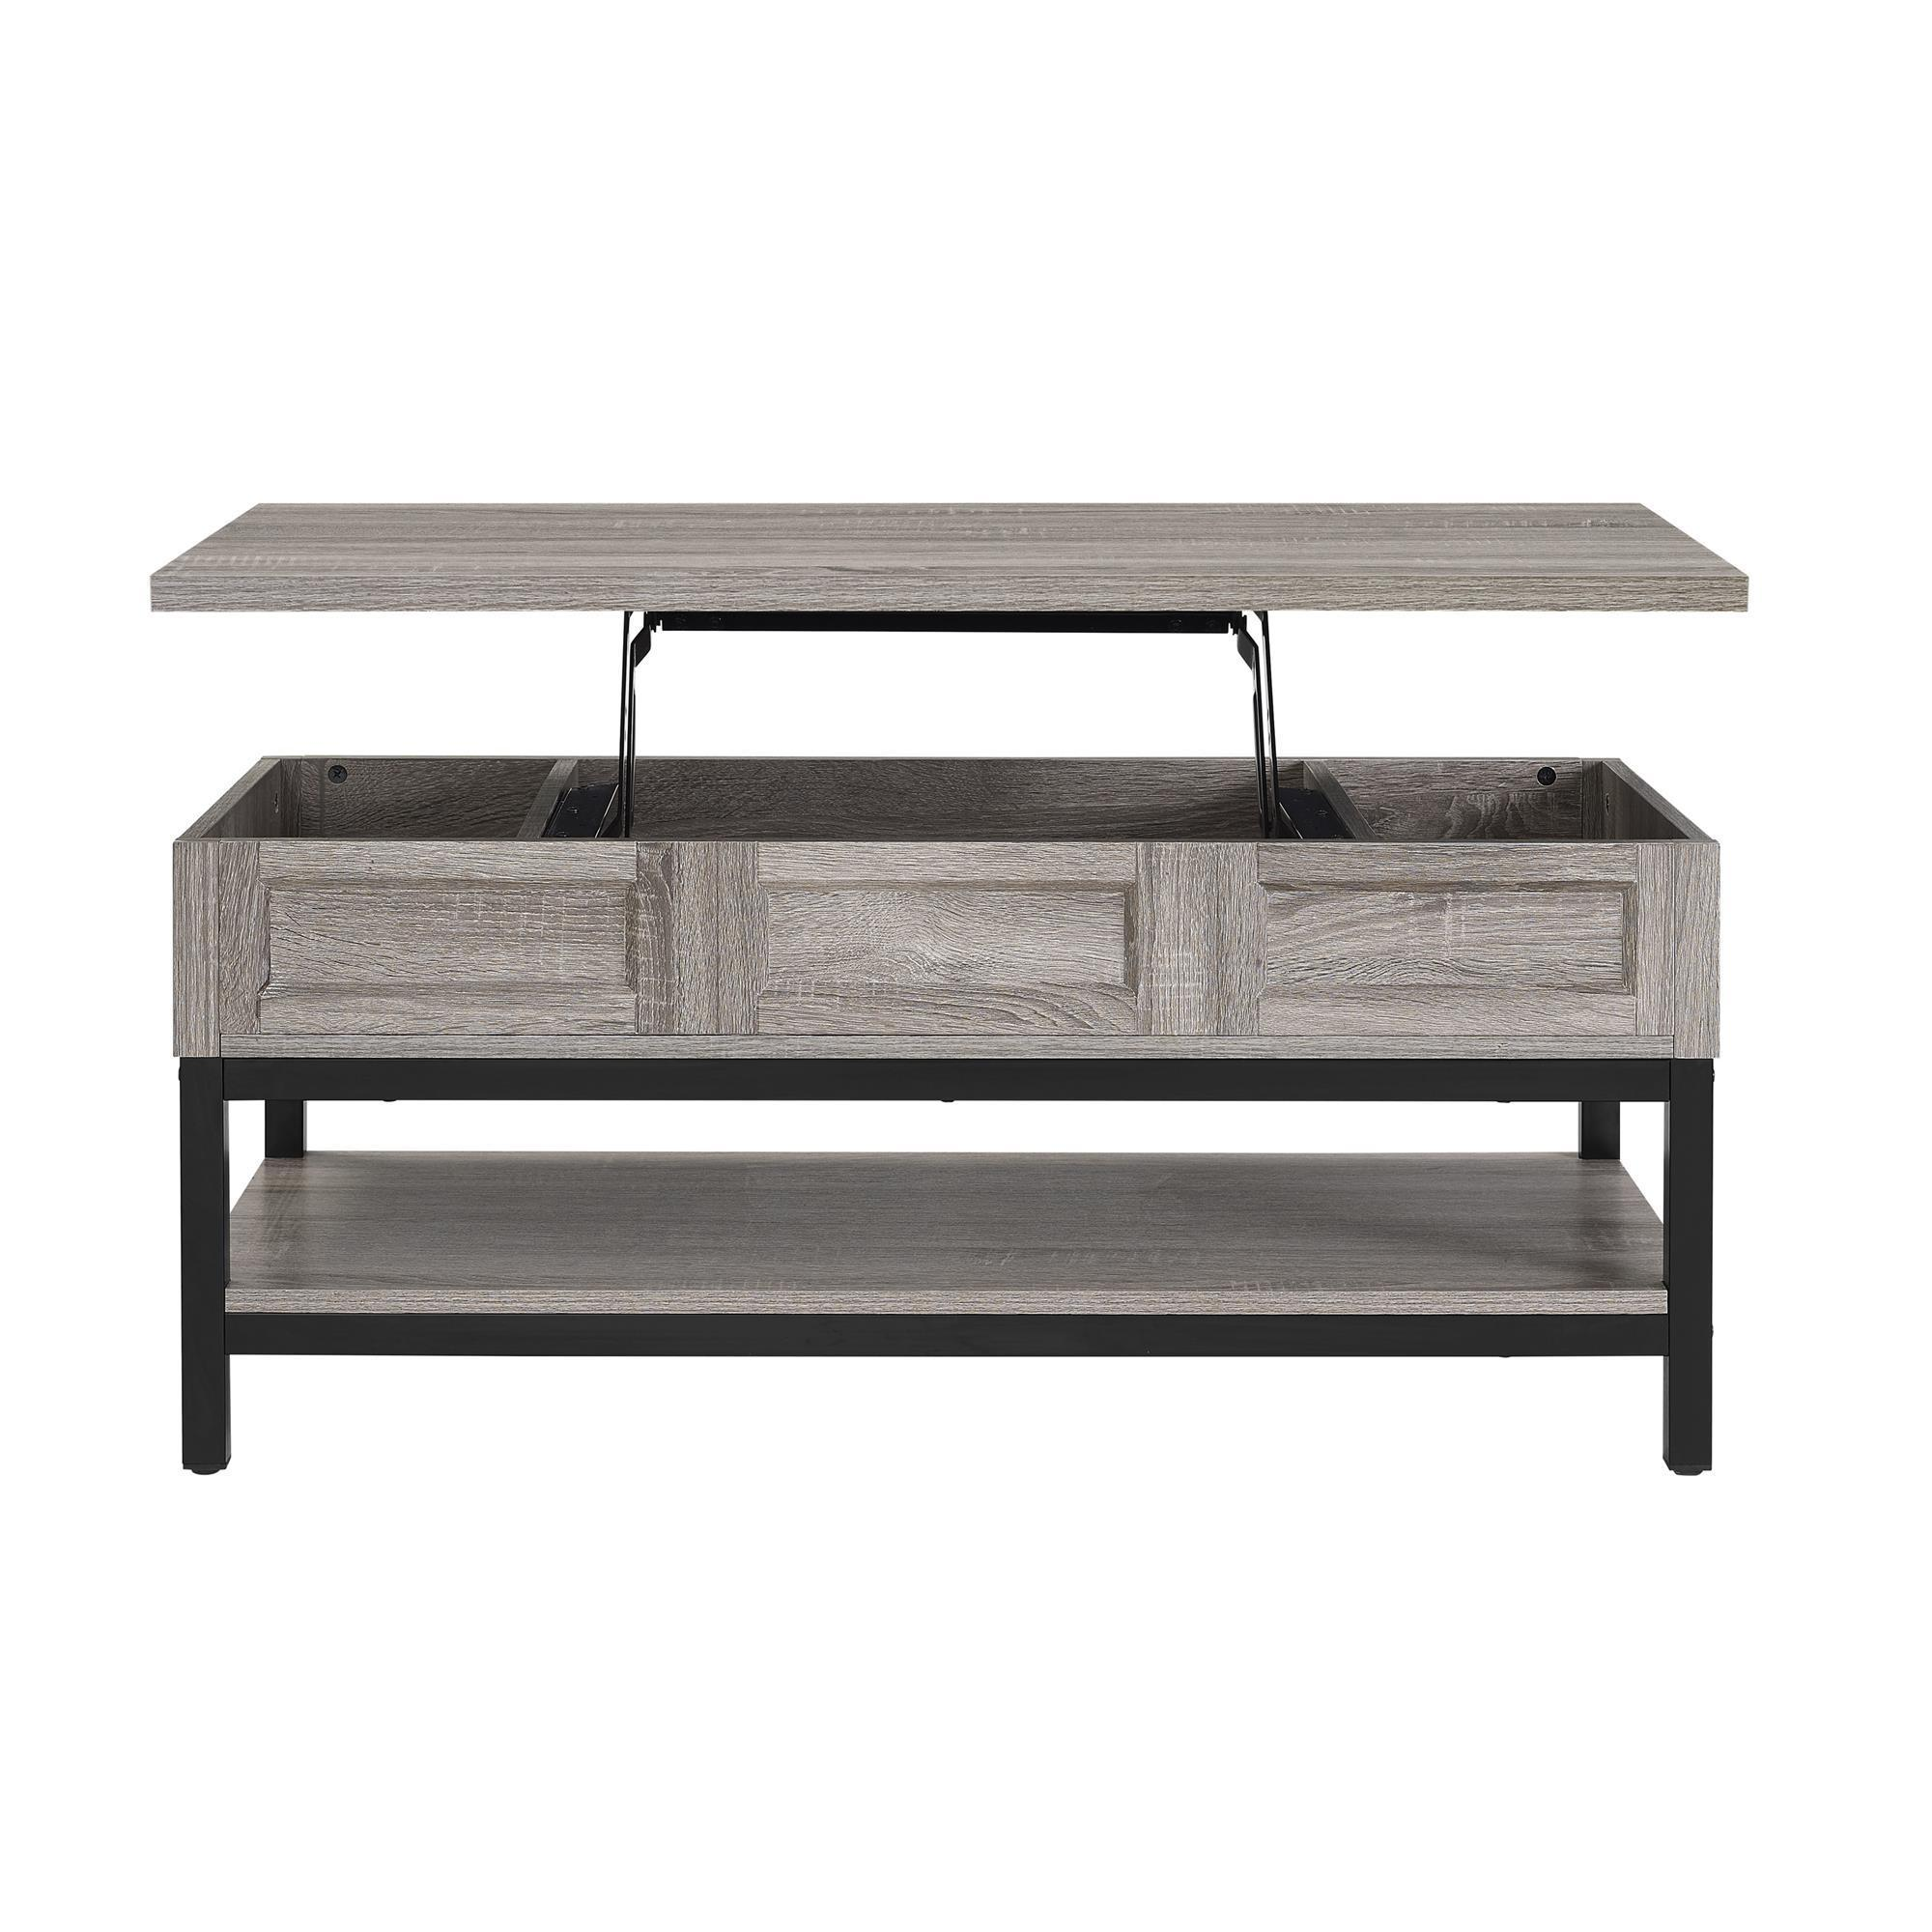 Ameriwood Home Barrett Modern Farmhouse Lift Top Sonoma Oak Coffee Table    Free Shipping Today   Overstock.com   20561911 Design Inspirations